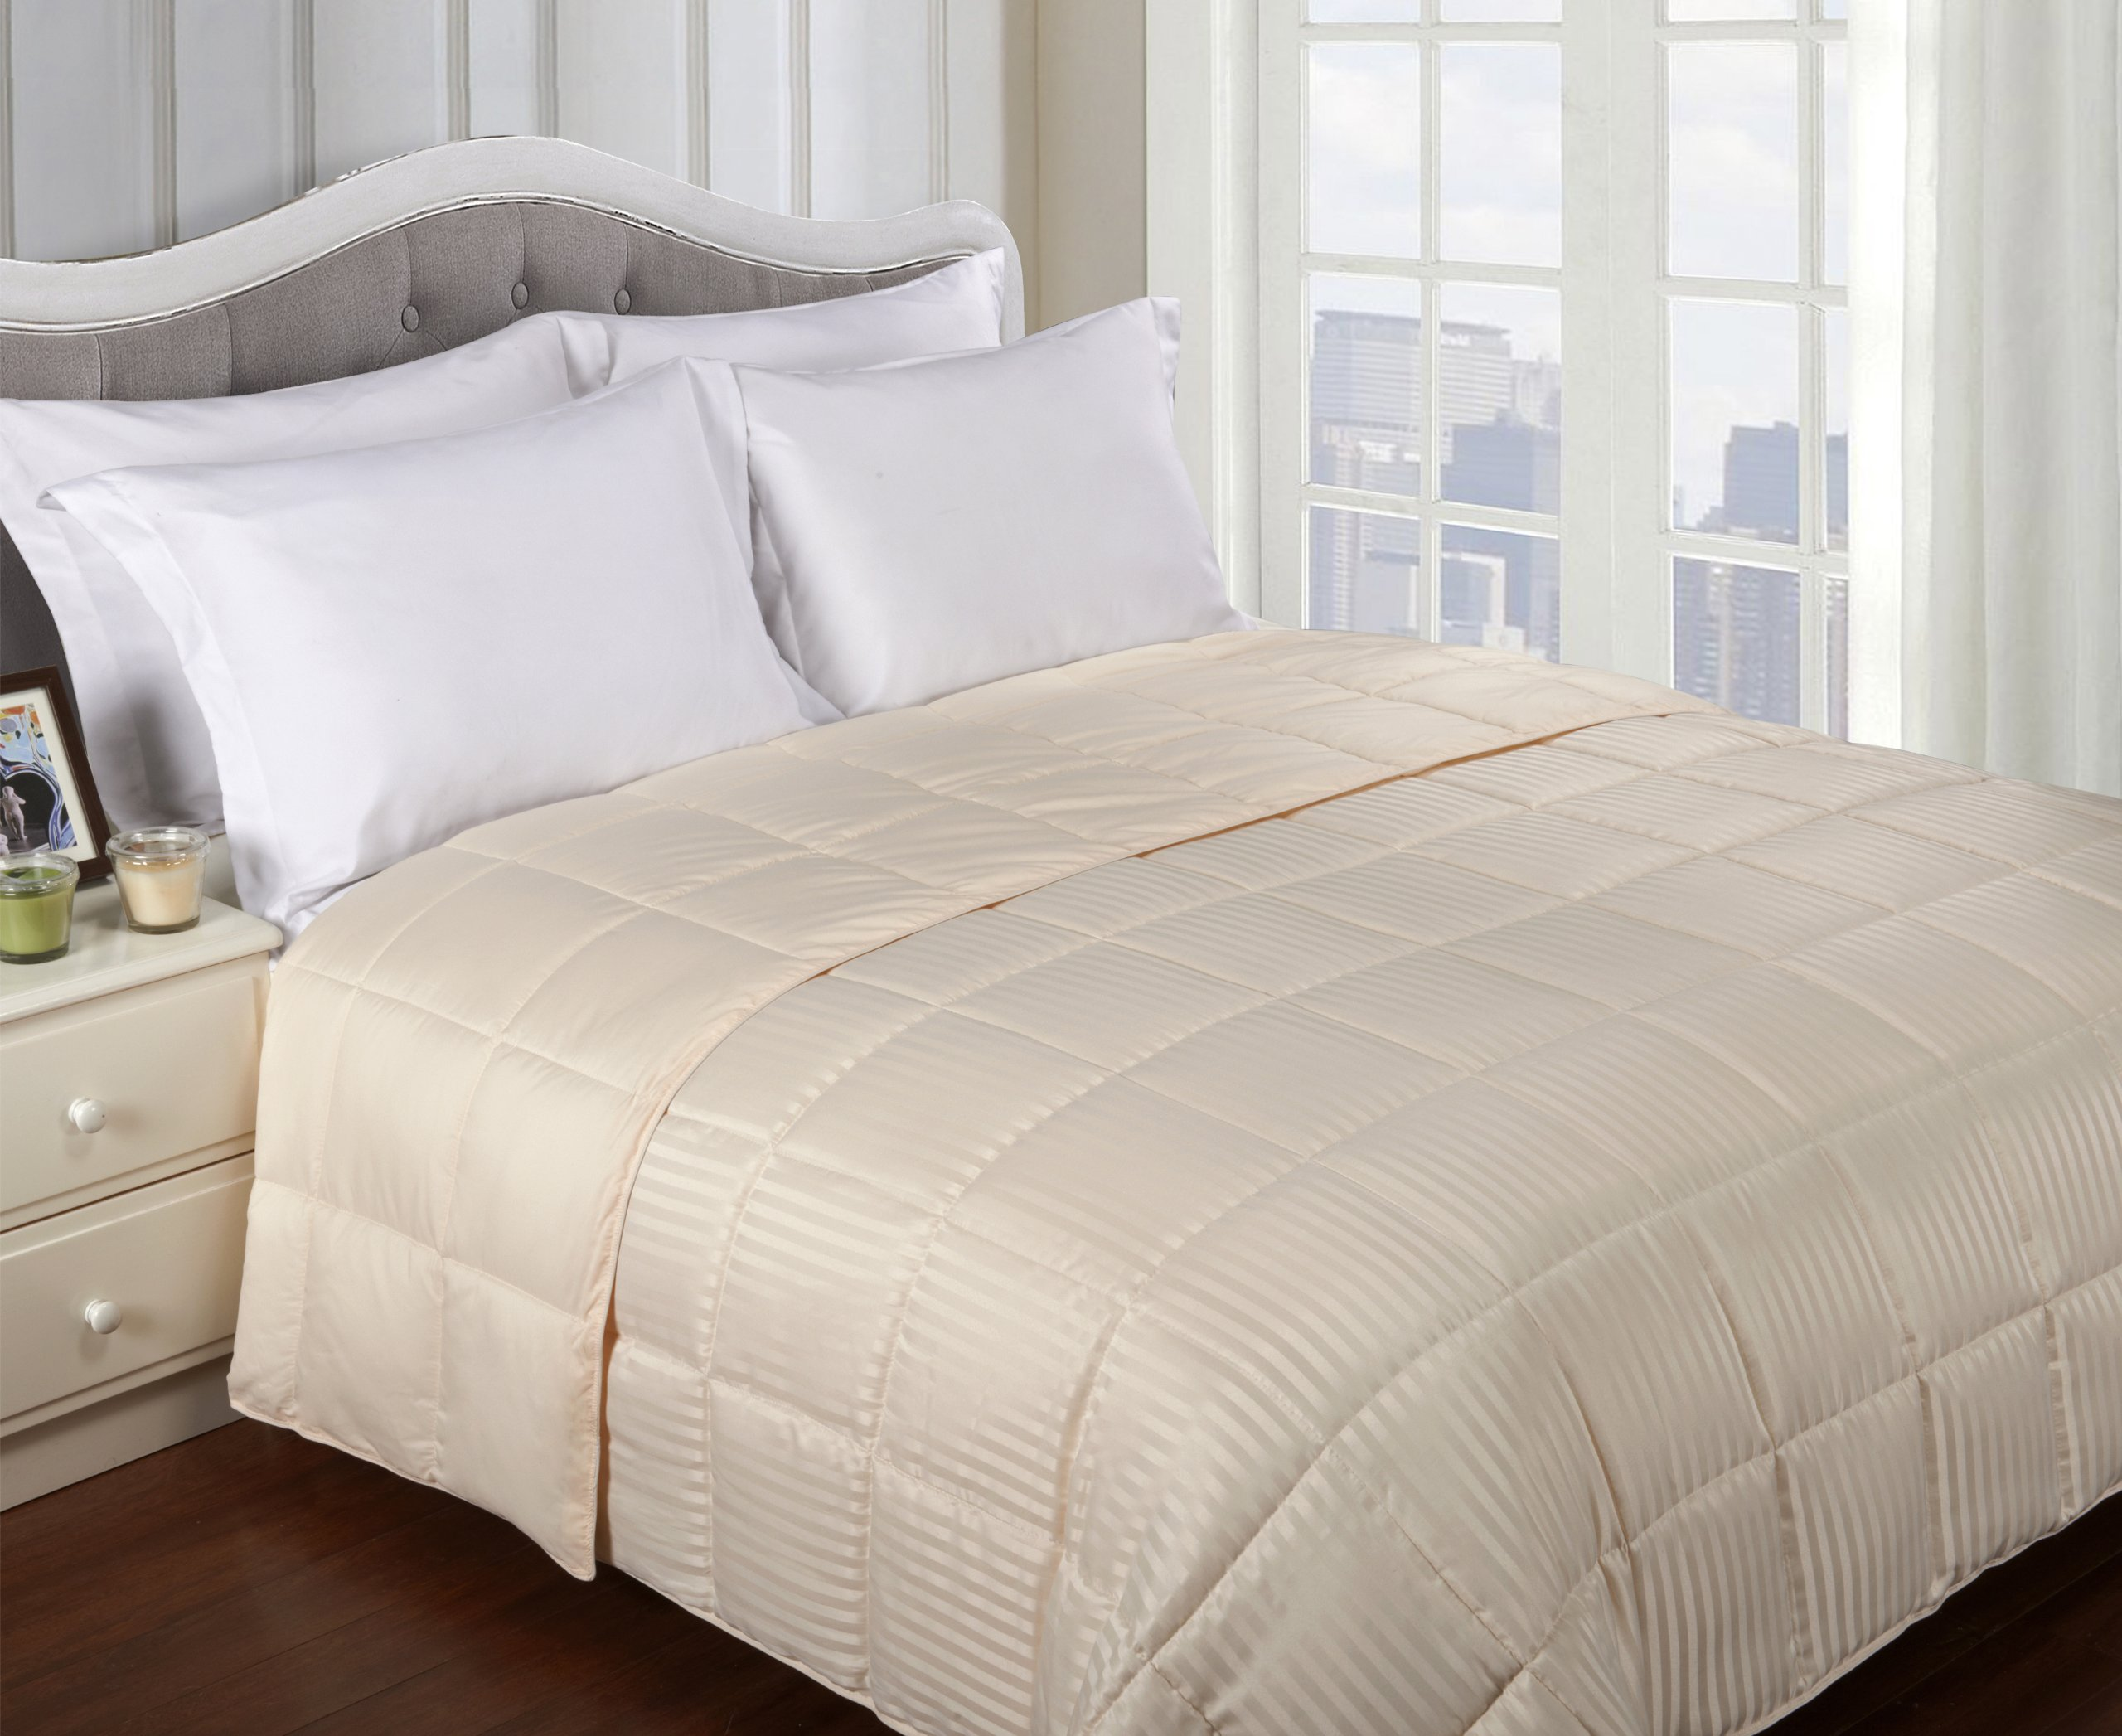 Superior Reversible Down Alternative Polyfill Blanket with Striped Microfiber Shell - Full/Queen, Ivory